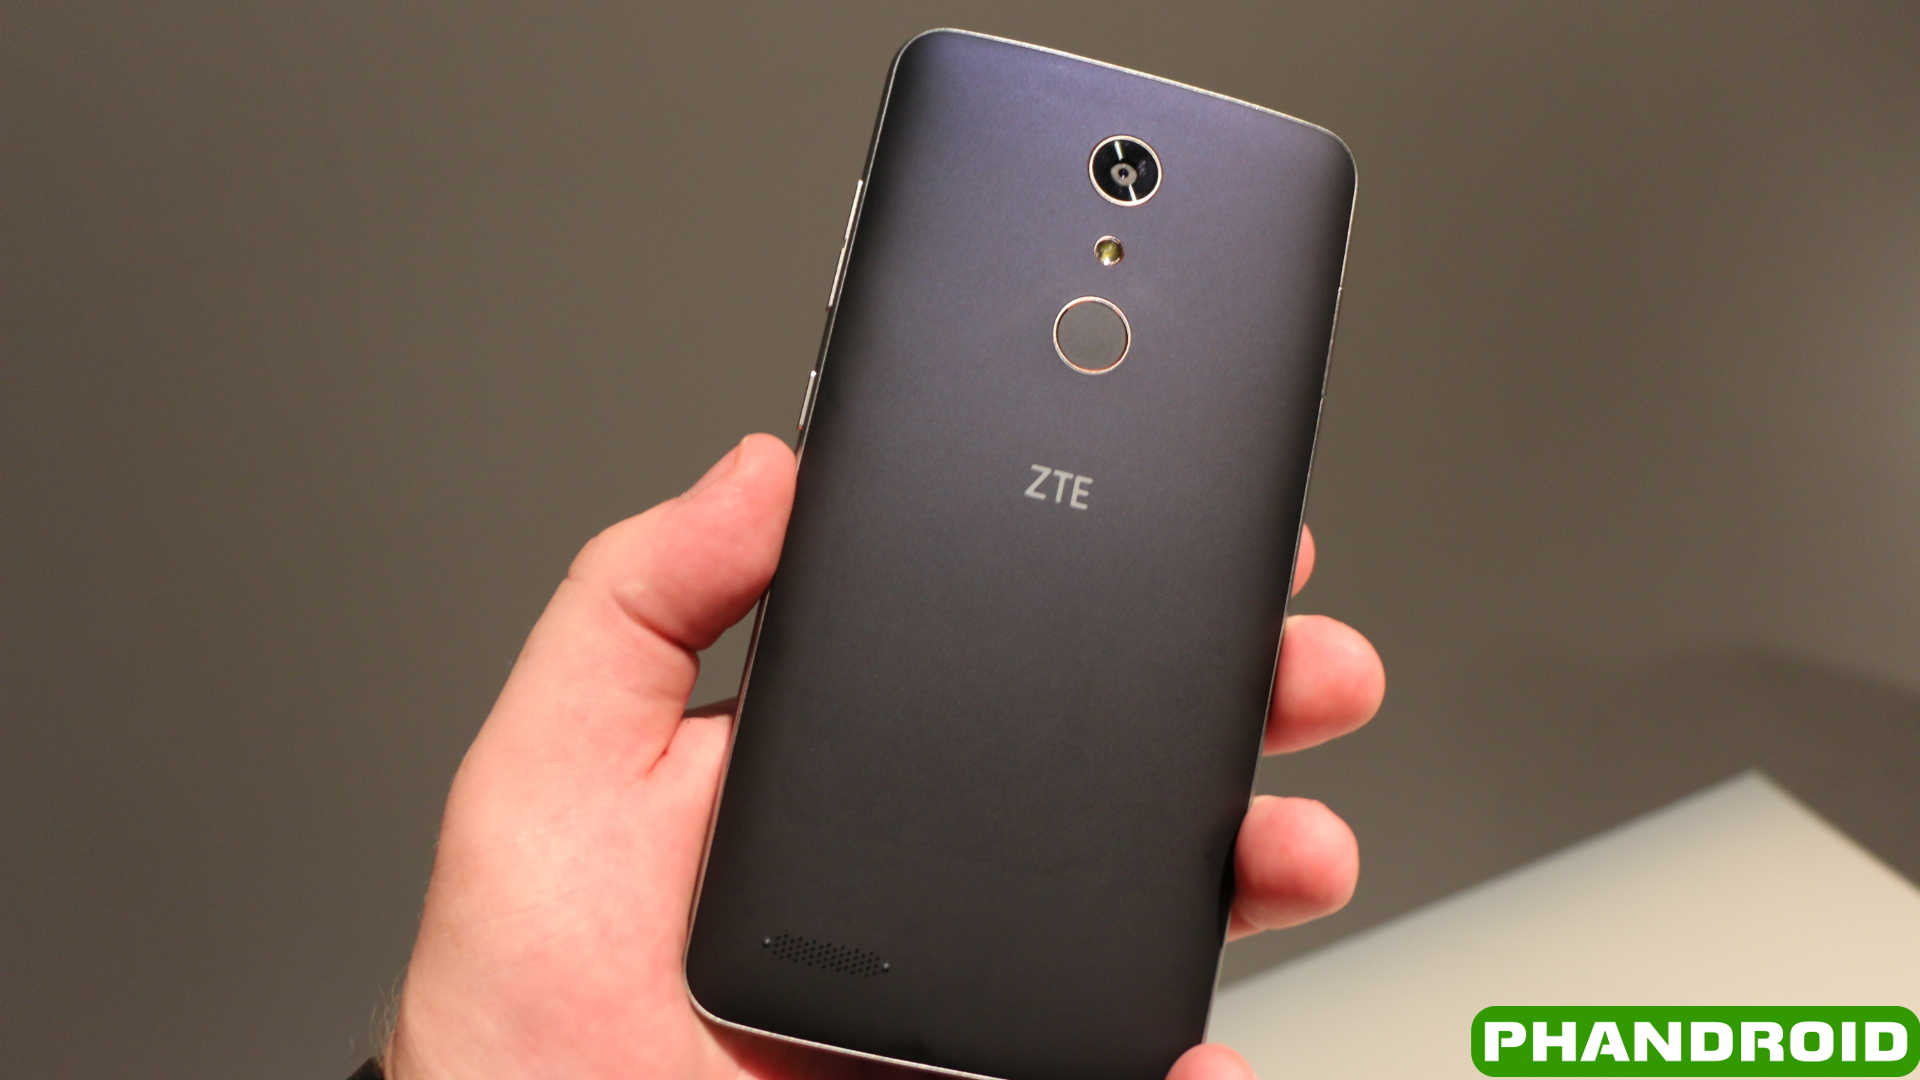 The Best Cheap Android Phone August 2016